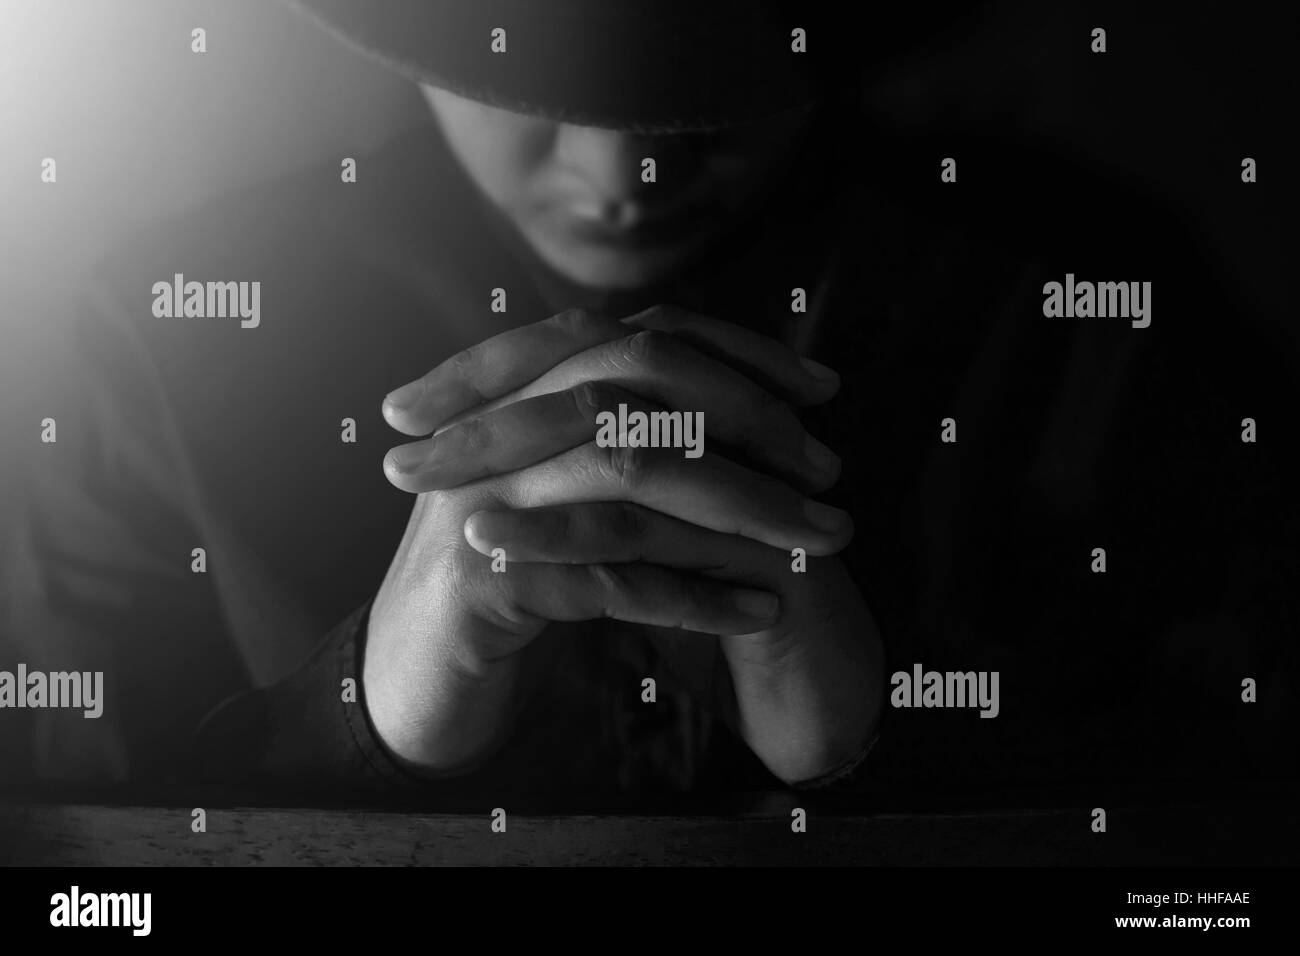 Pray in the Darkness with shining light, Selective focus on hands, Dramatic and emotional - Stock Image